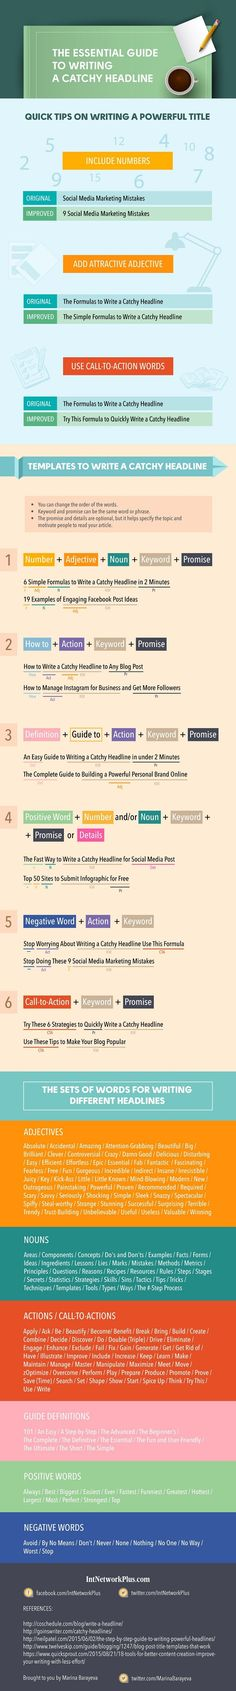 The Essential Guide to Writing a Catchy Headline